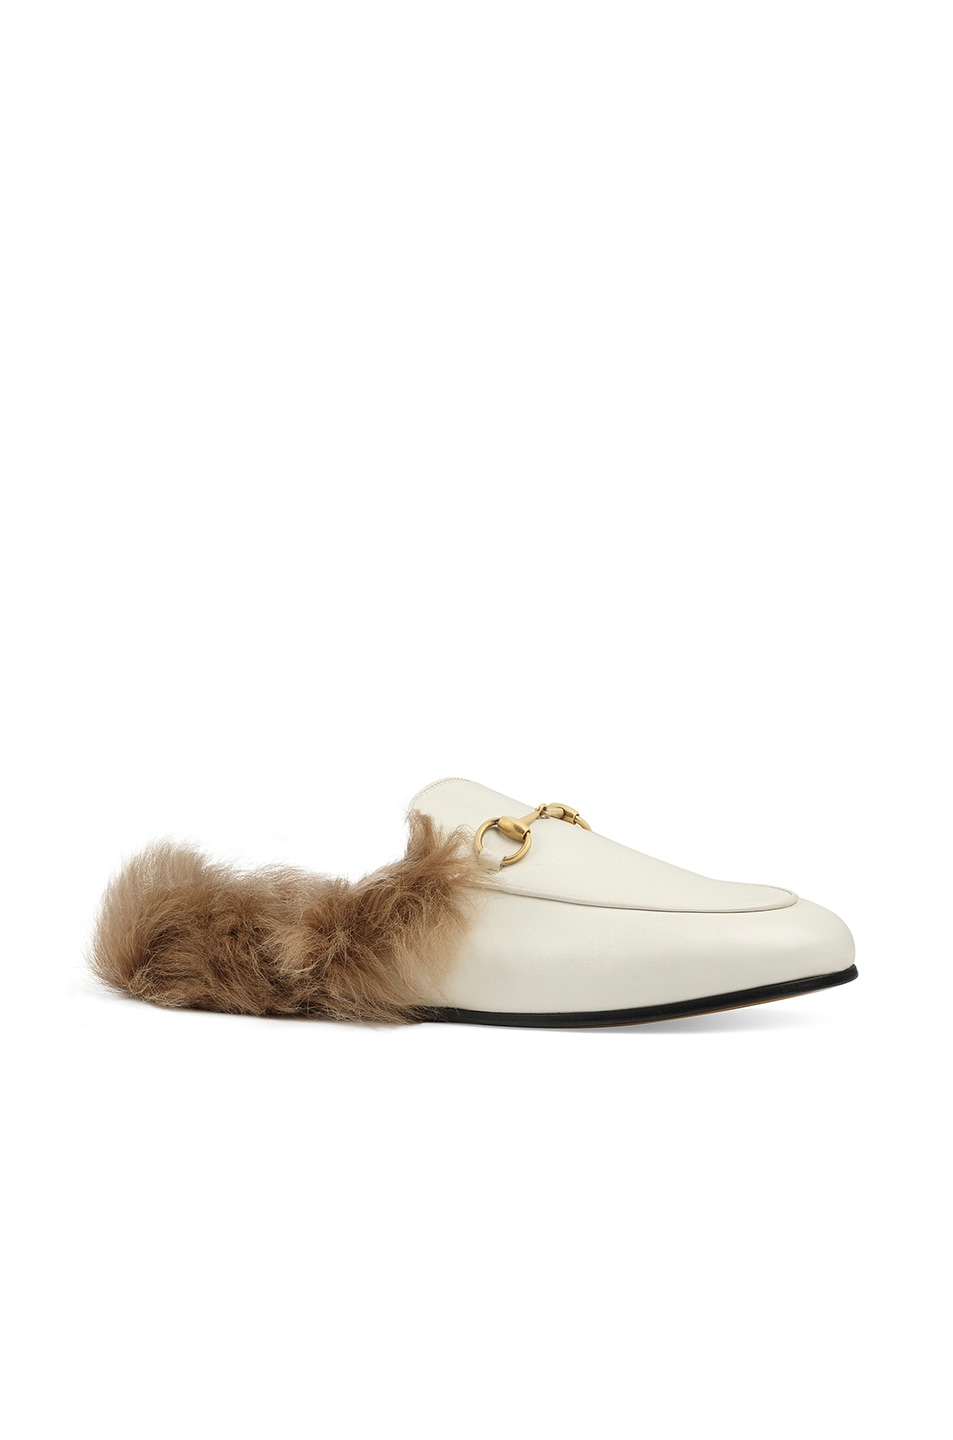 Image 2 of Gucci Princetown Slides in Dusty White & Natural